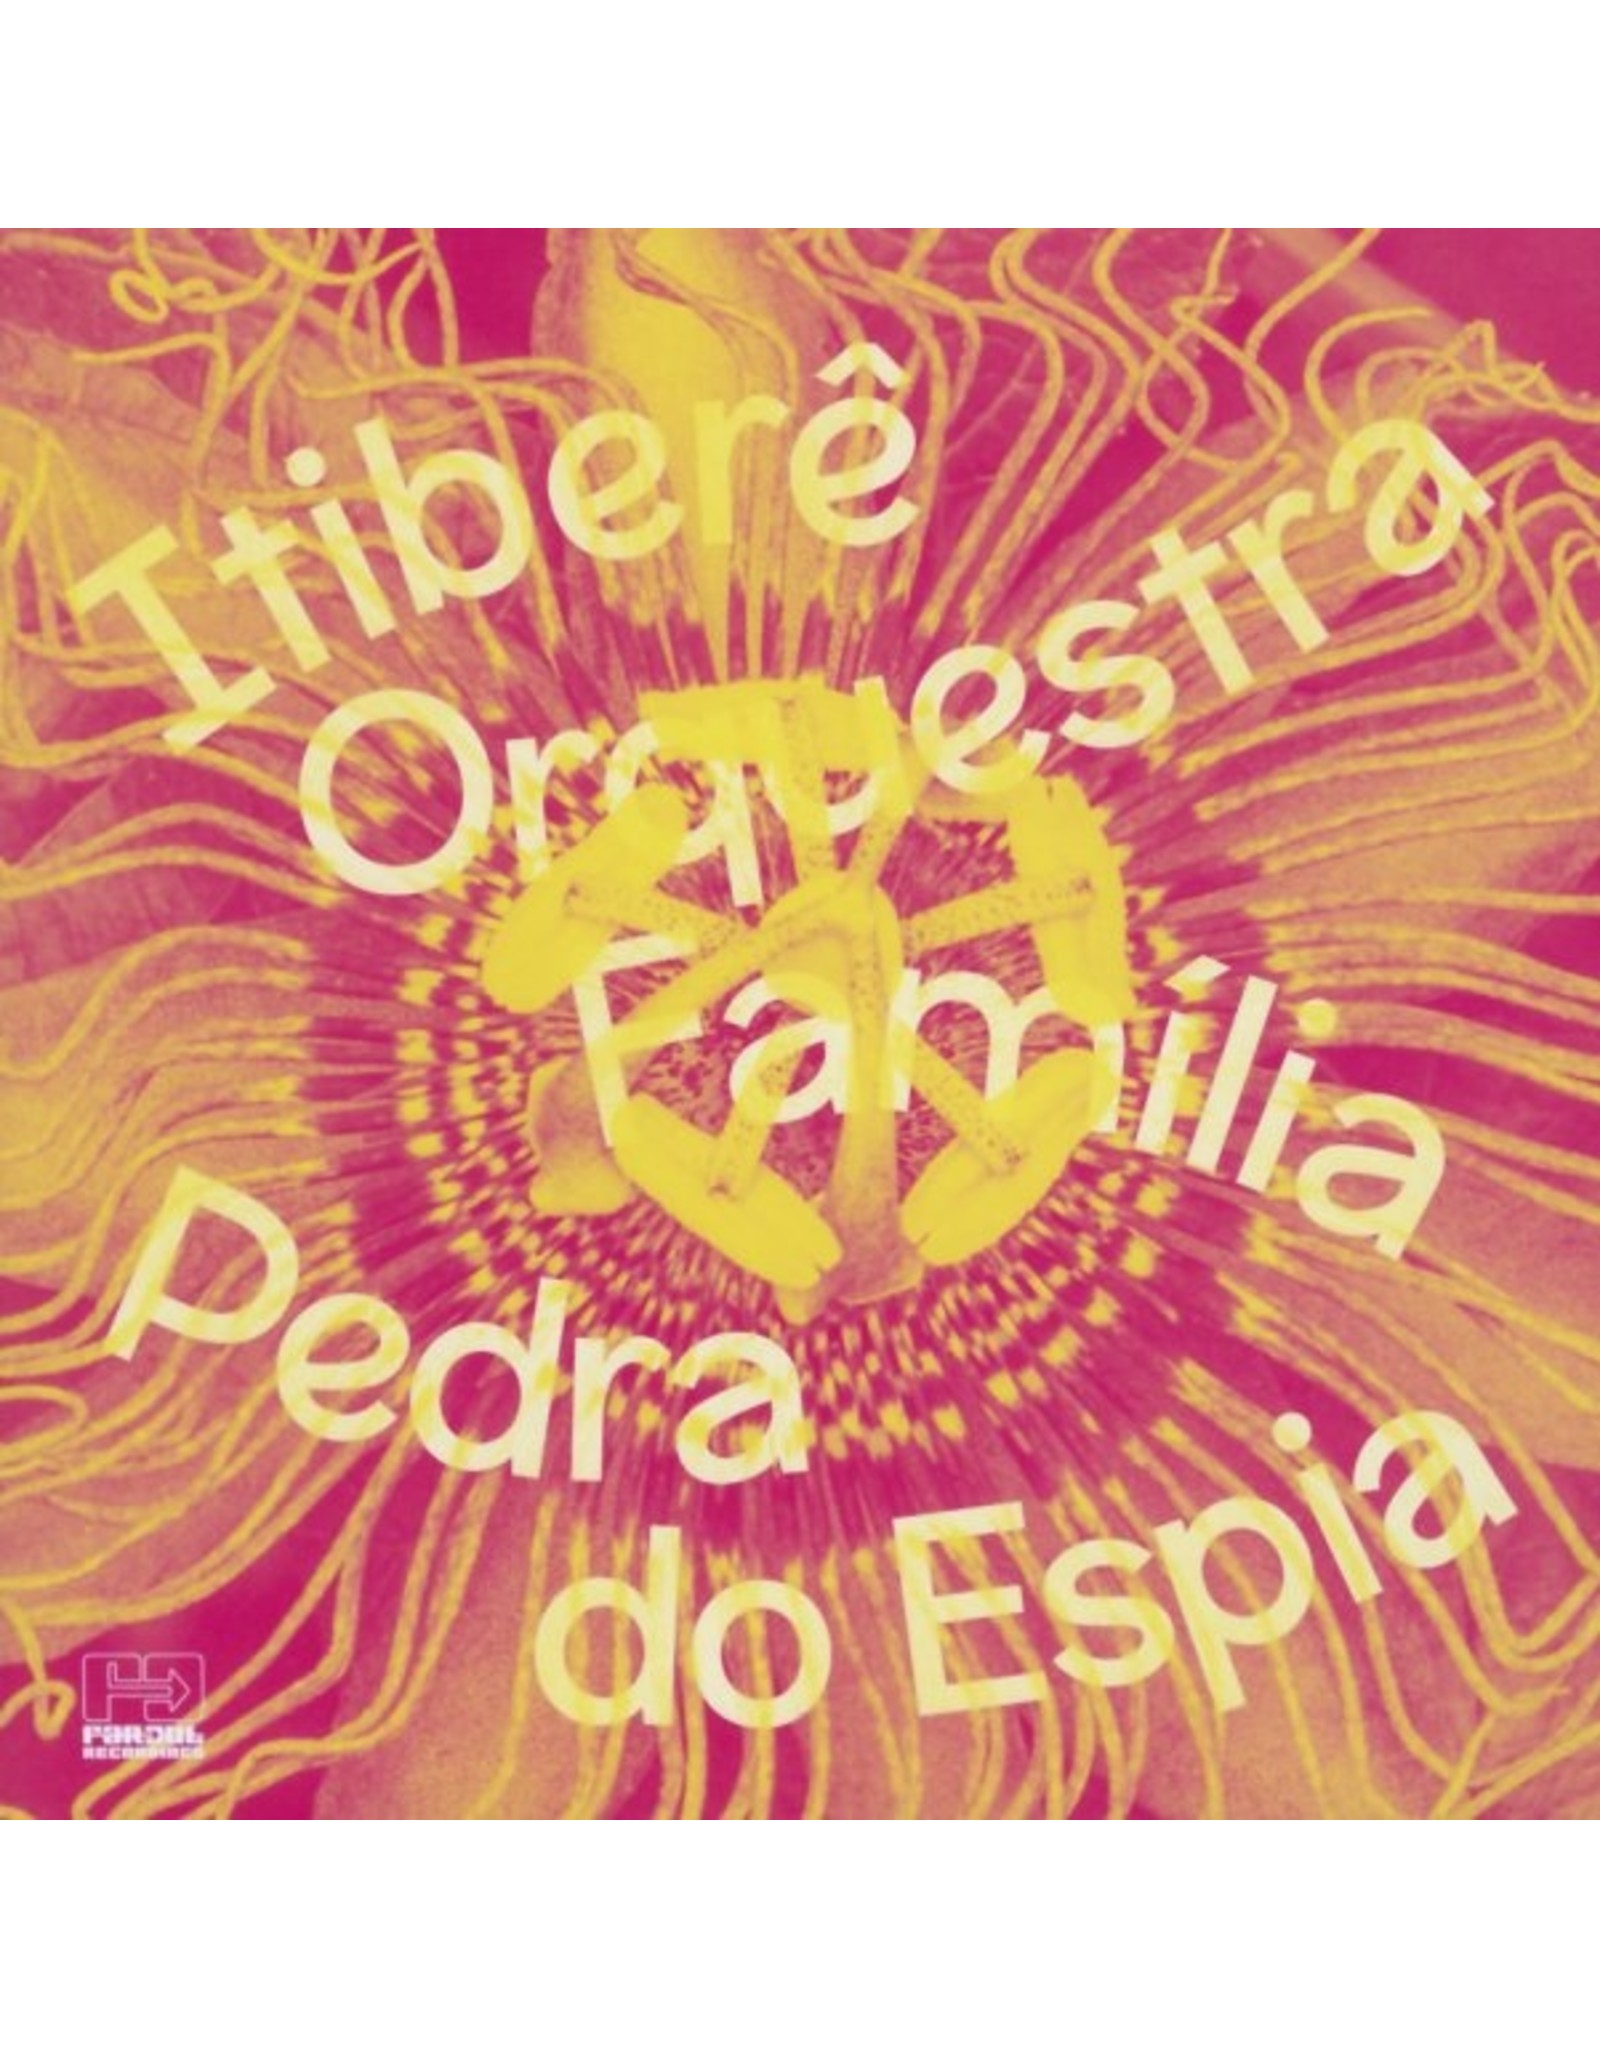 New Vinyl Itibere Orquestra Familia - Pedra Do Espia LP